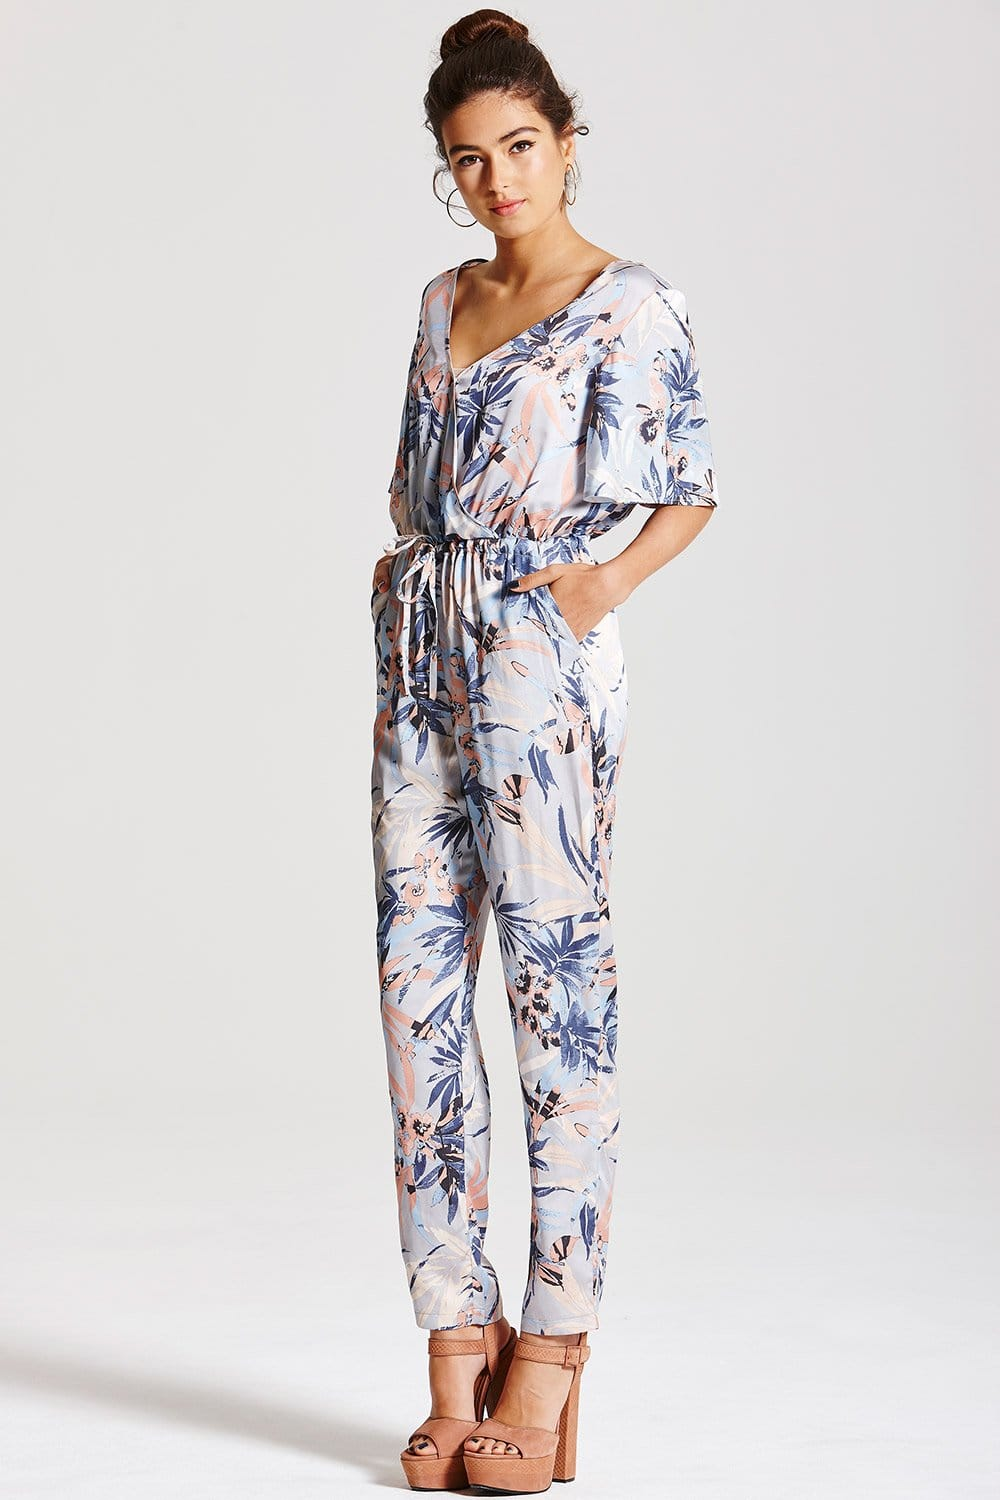 Outlet Girls On Film Pastel Floral Jumpsuit Outlet Girls